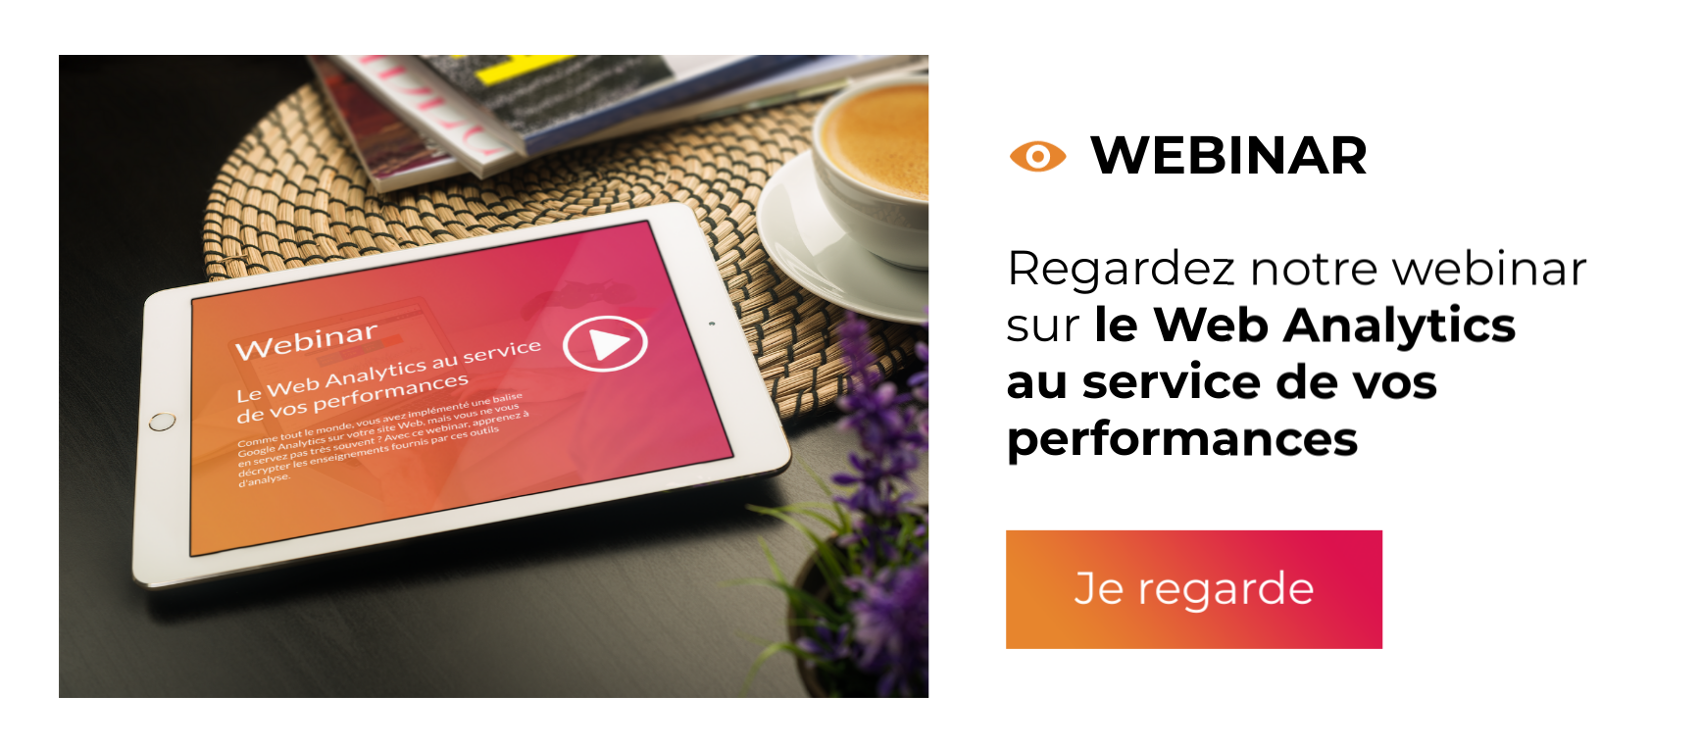 Webinar - Le Web Analytics au service de vos performances